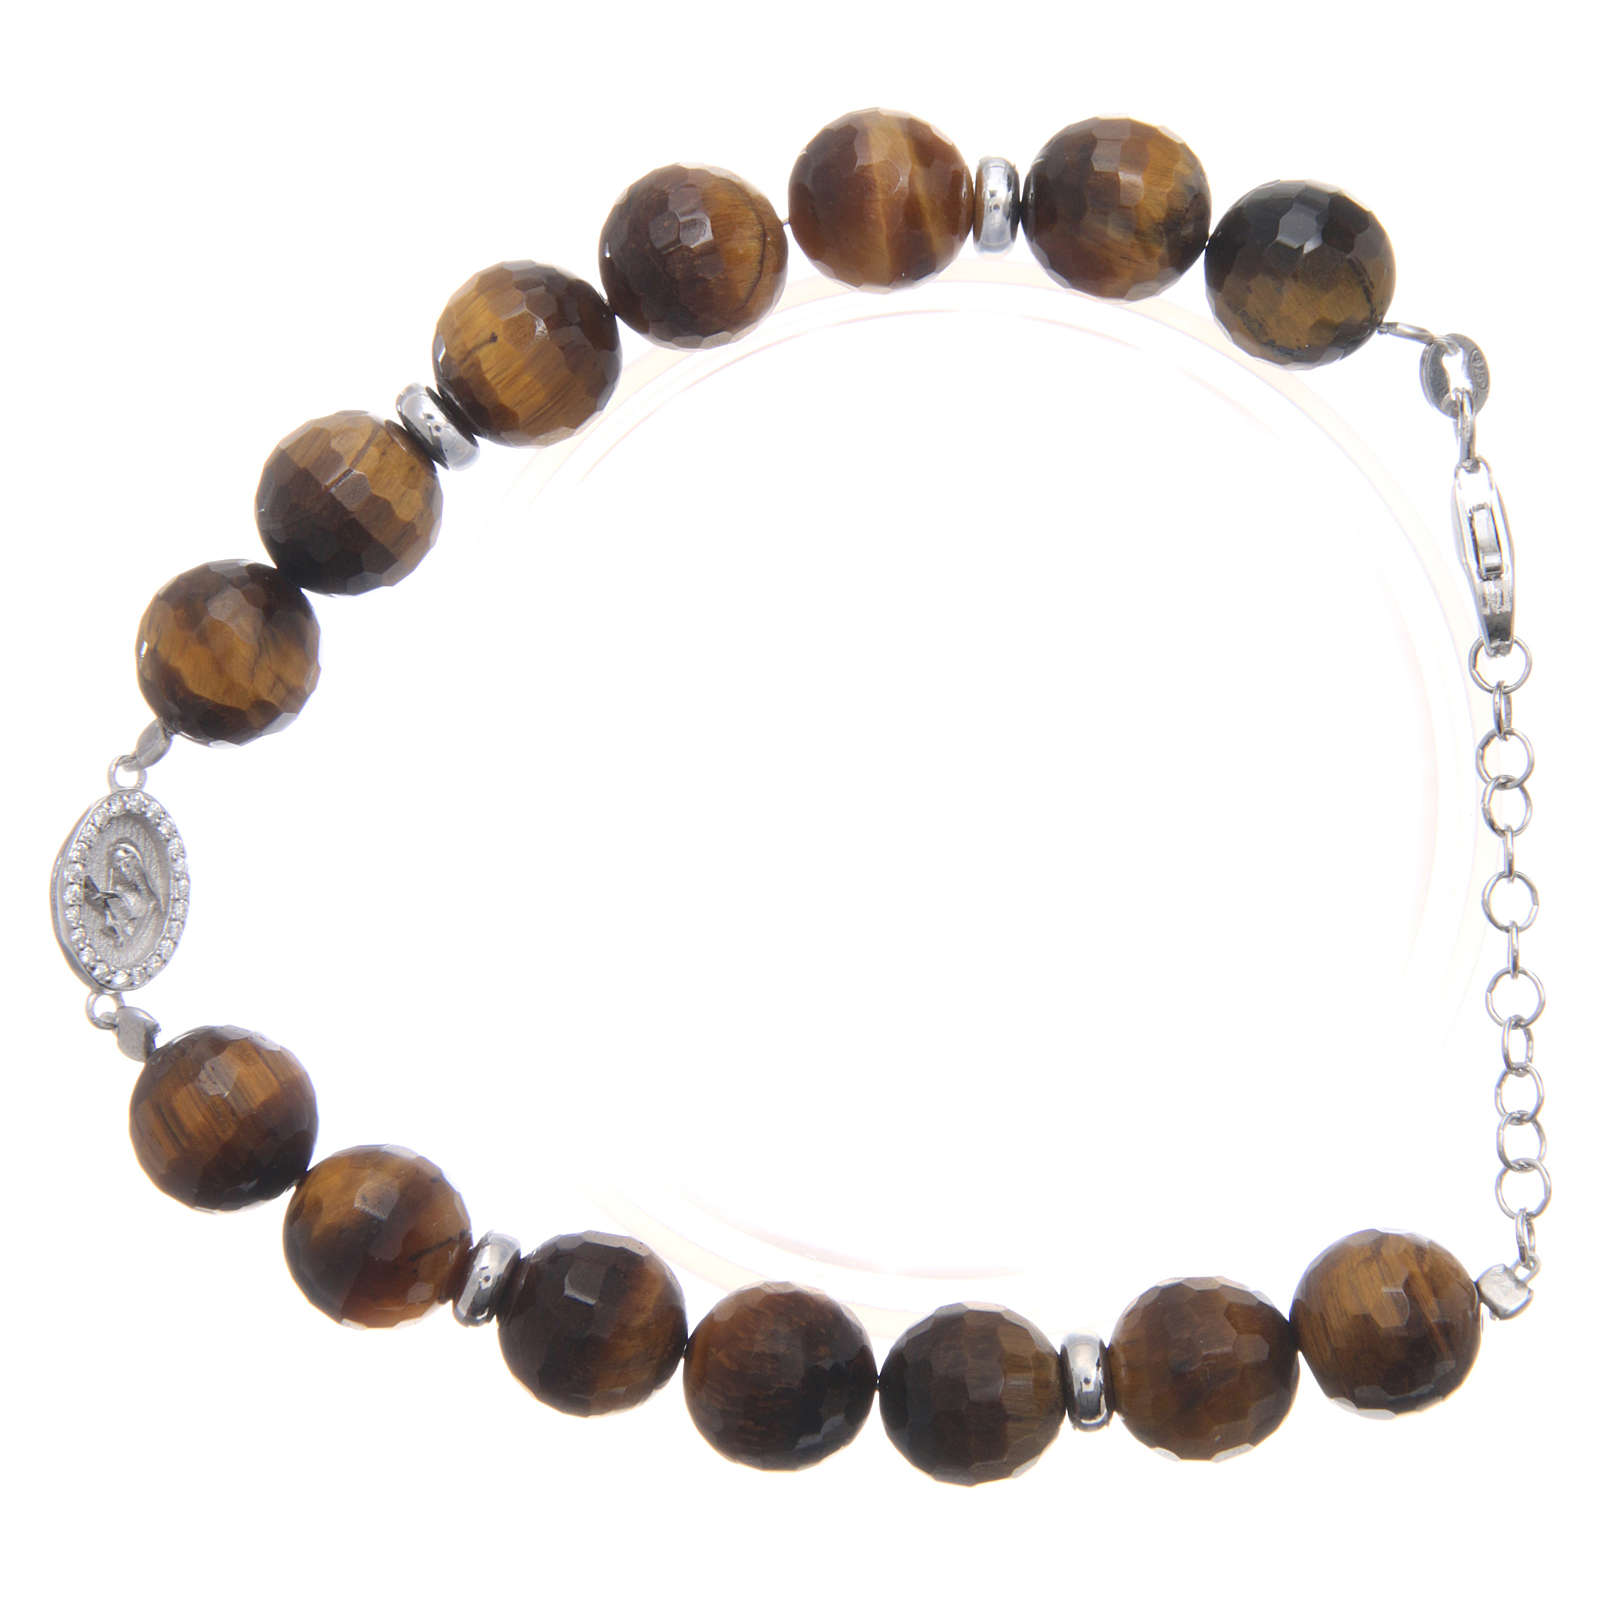 Bracelet with tiger's eye beads 9 mm and white zirconate medal in 925 sterling silver 4